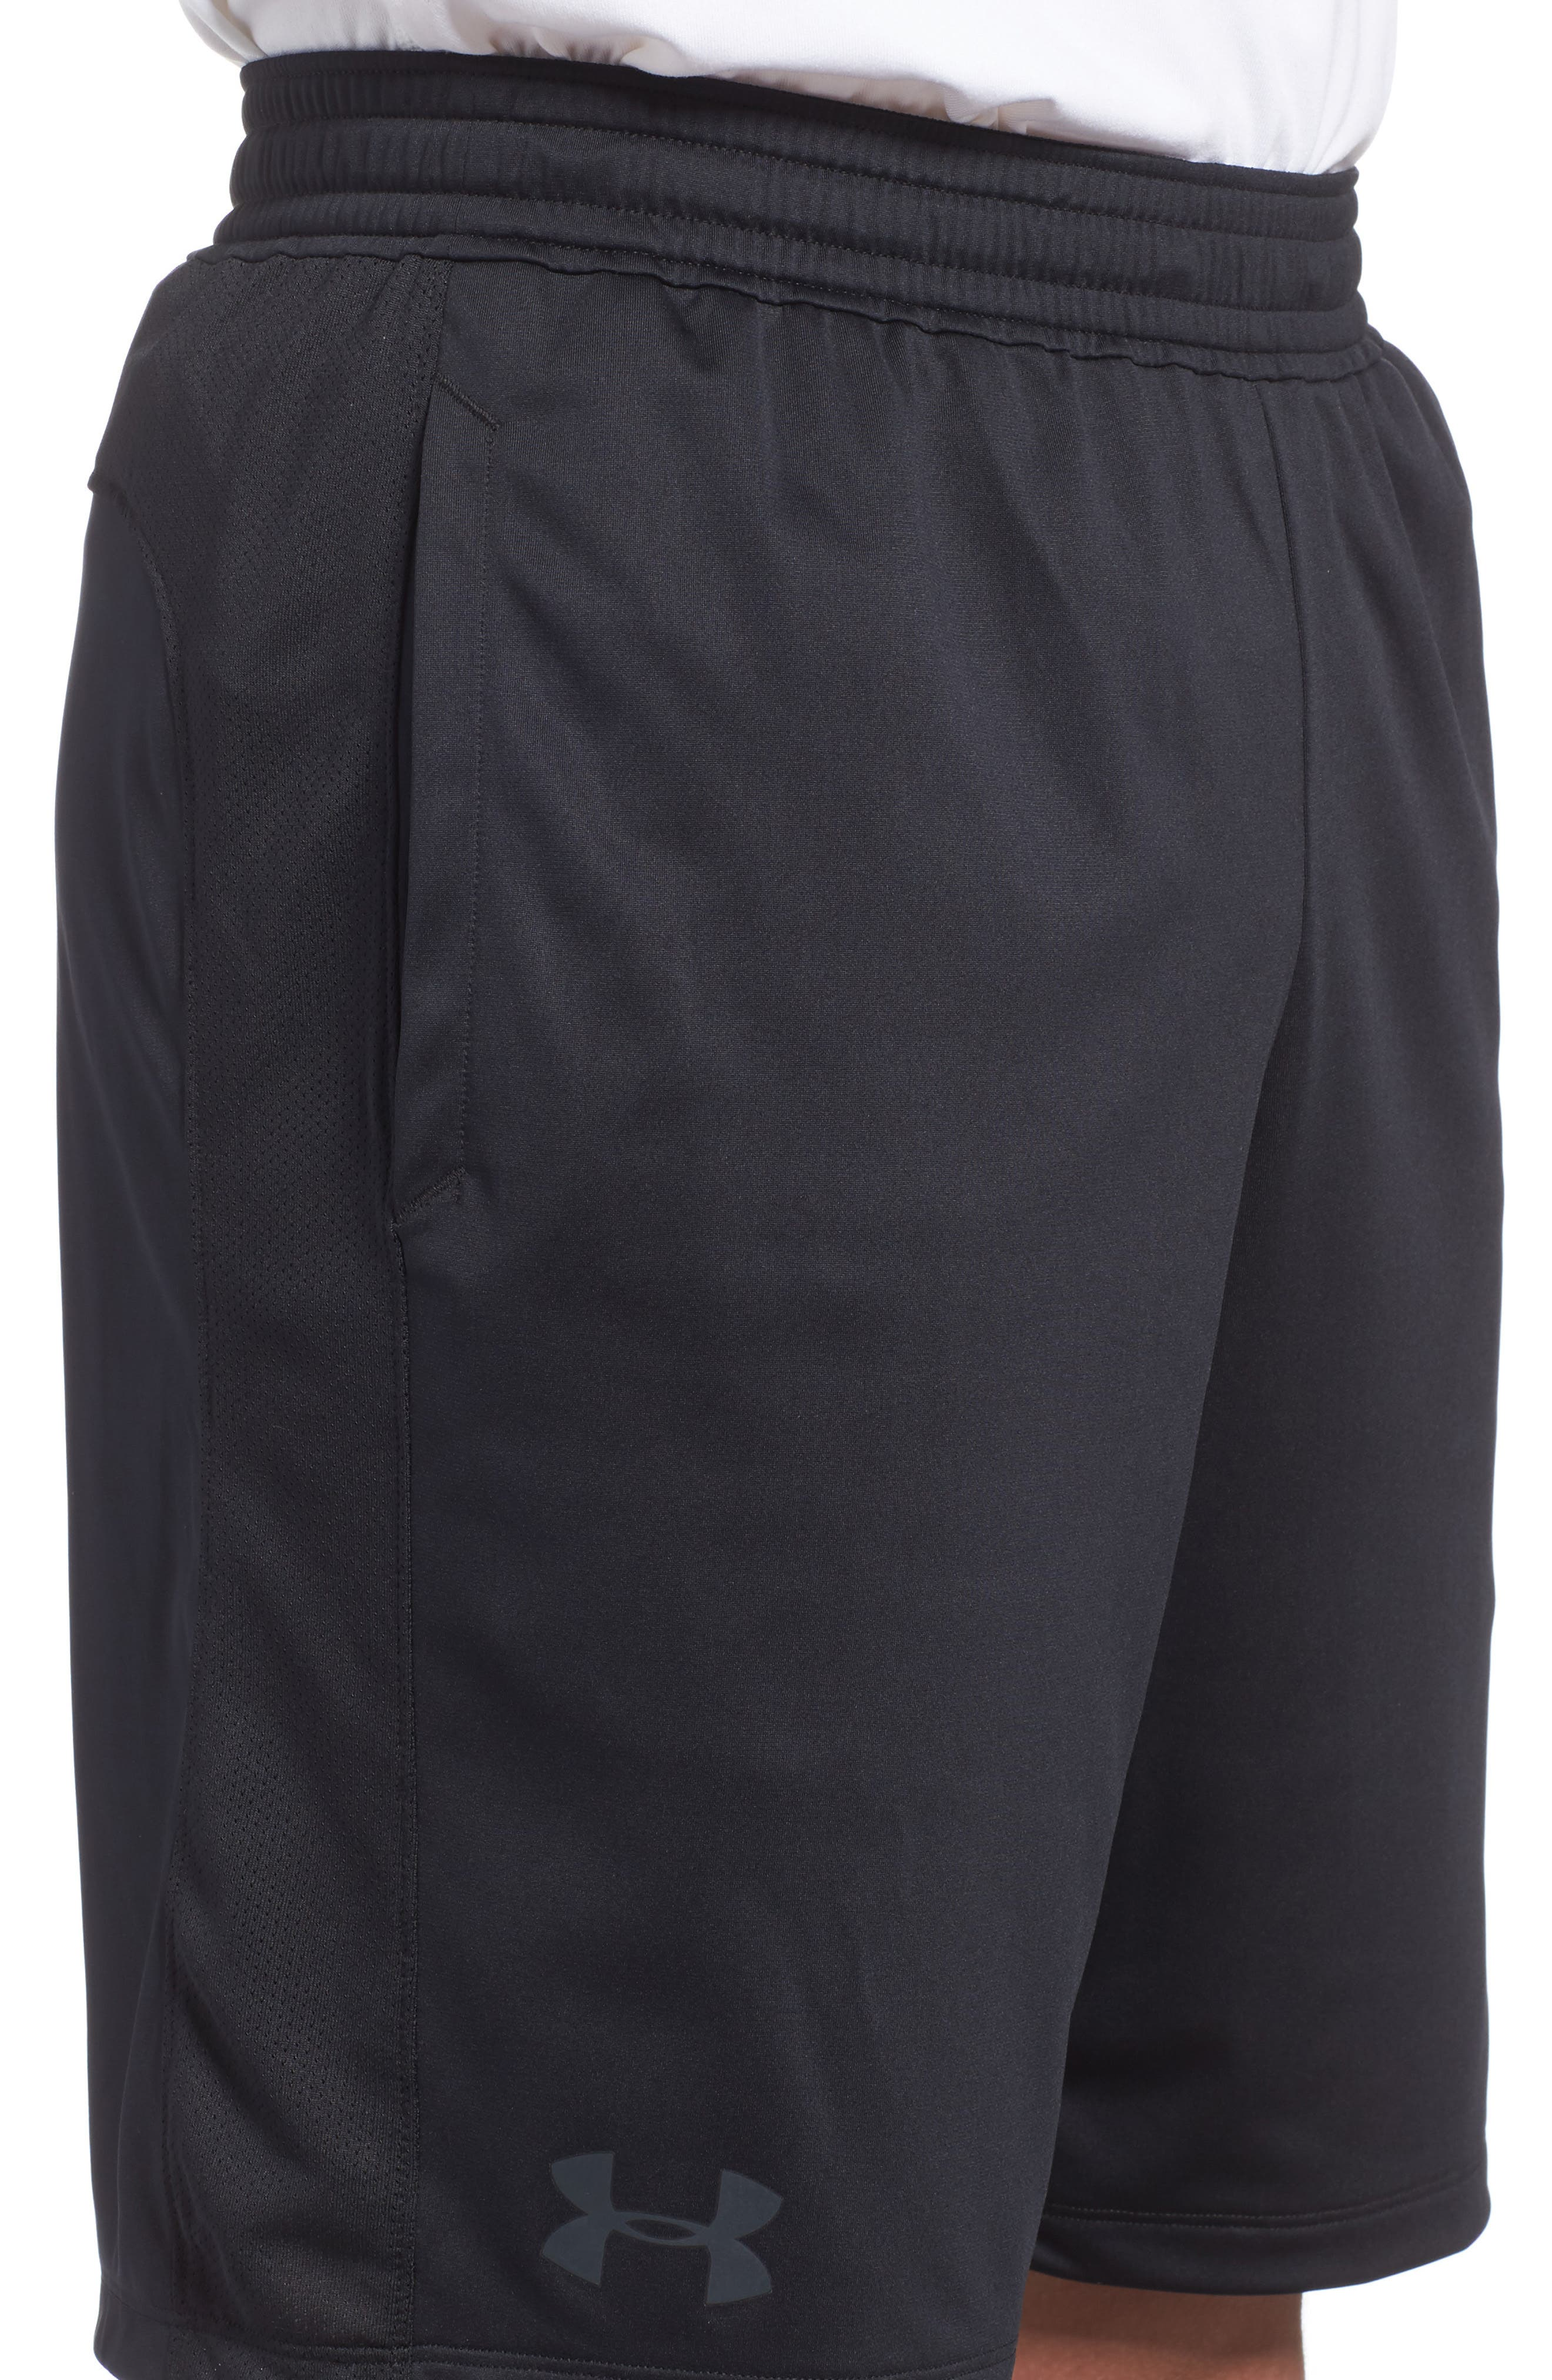 Raid 2.0 Classic Fit Shorts,                             Alternate thumbnail 4, color,                             BLACK